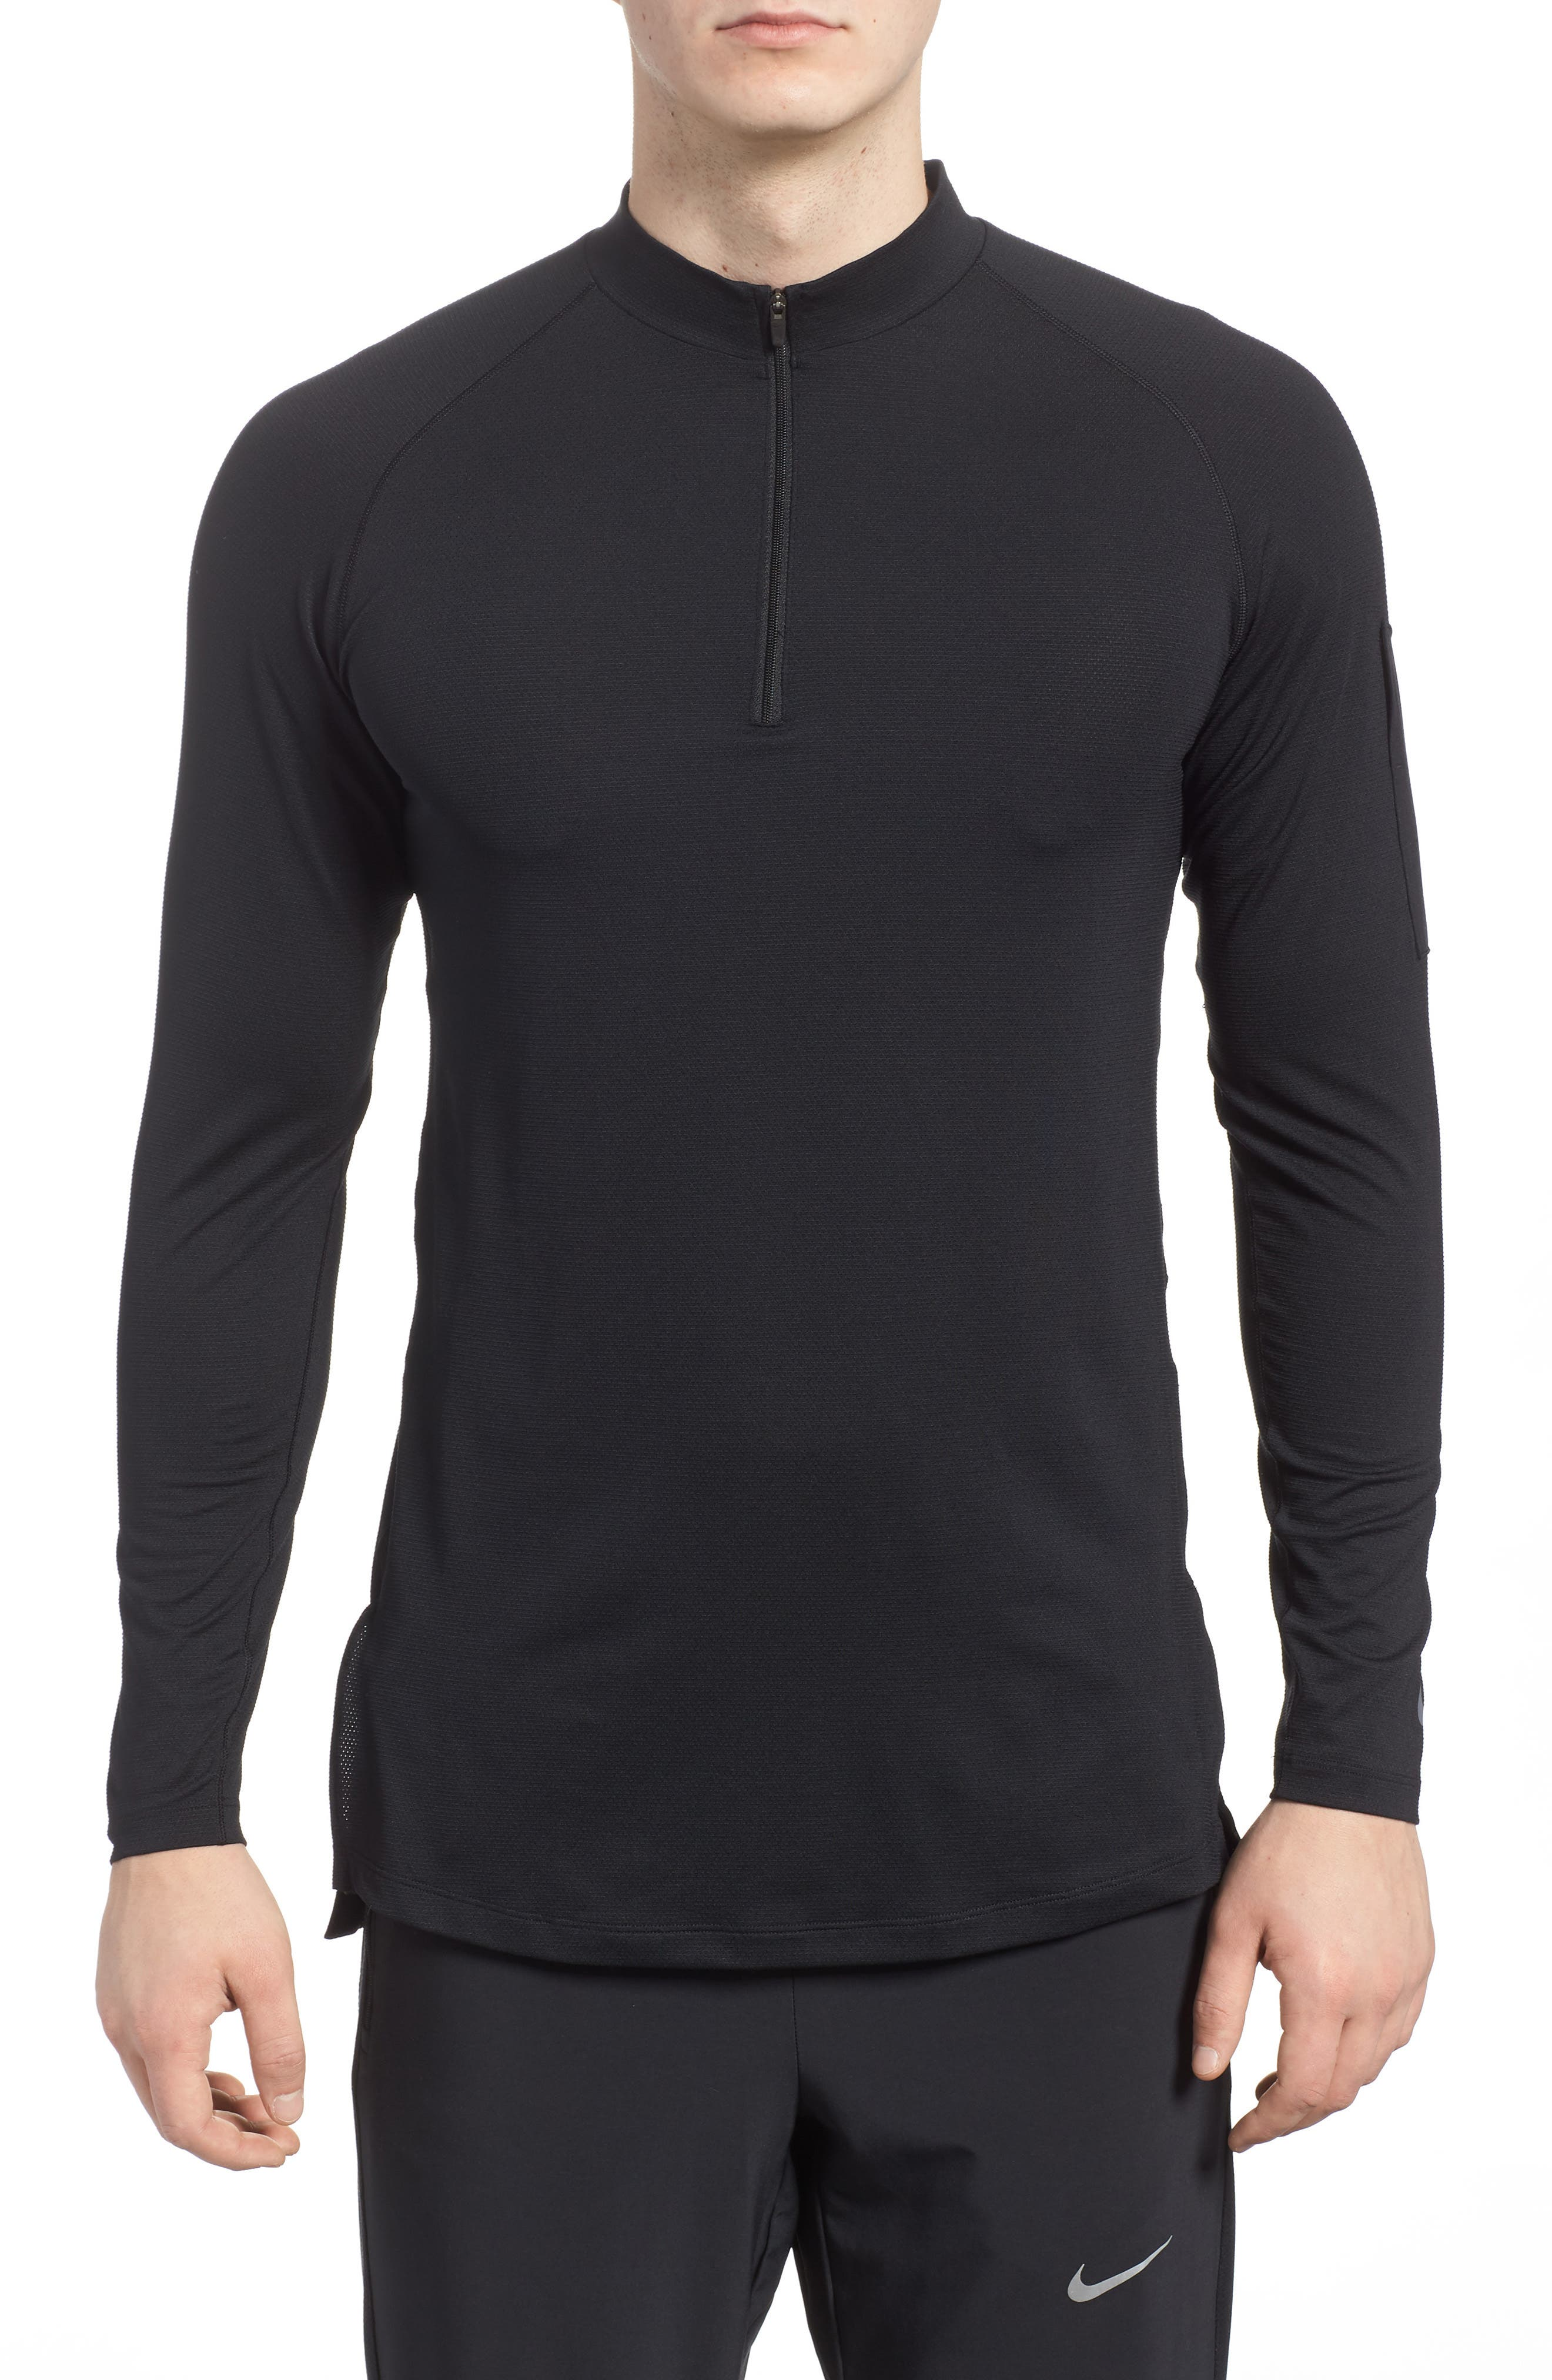 Nike Pro Fitted Utility Dry Tech Sport Top, Black